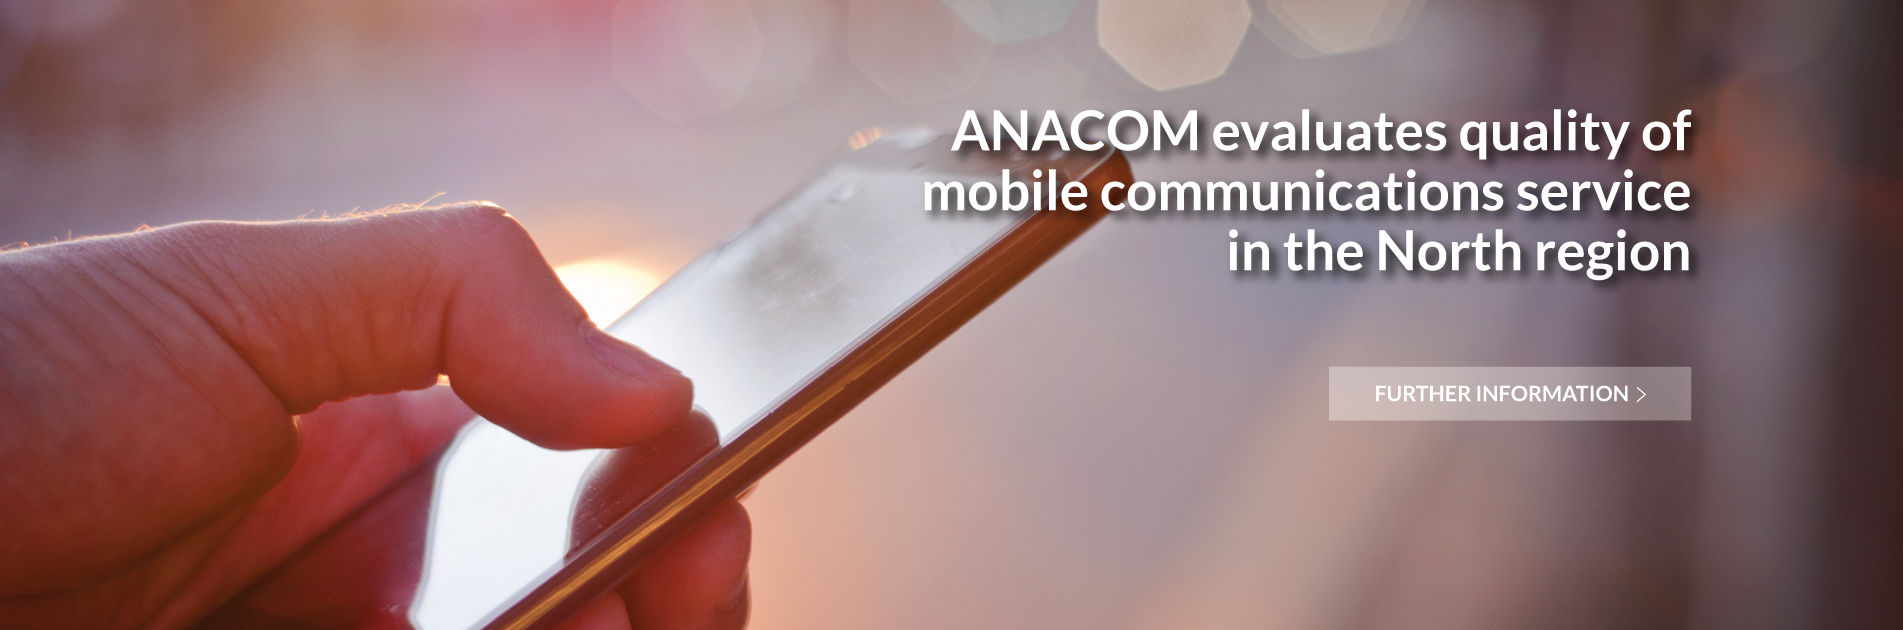 ANACOM evaluates quality of mobile communications service